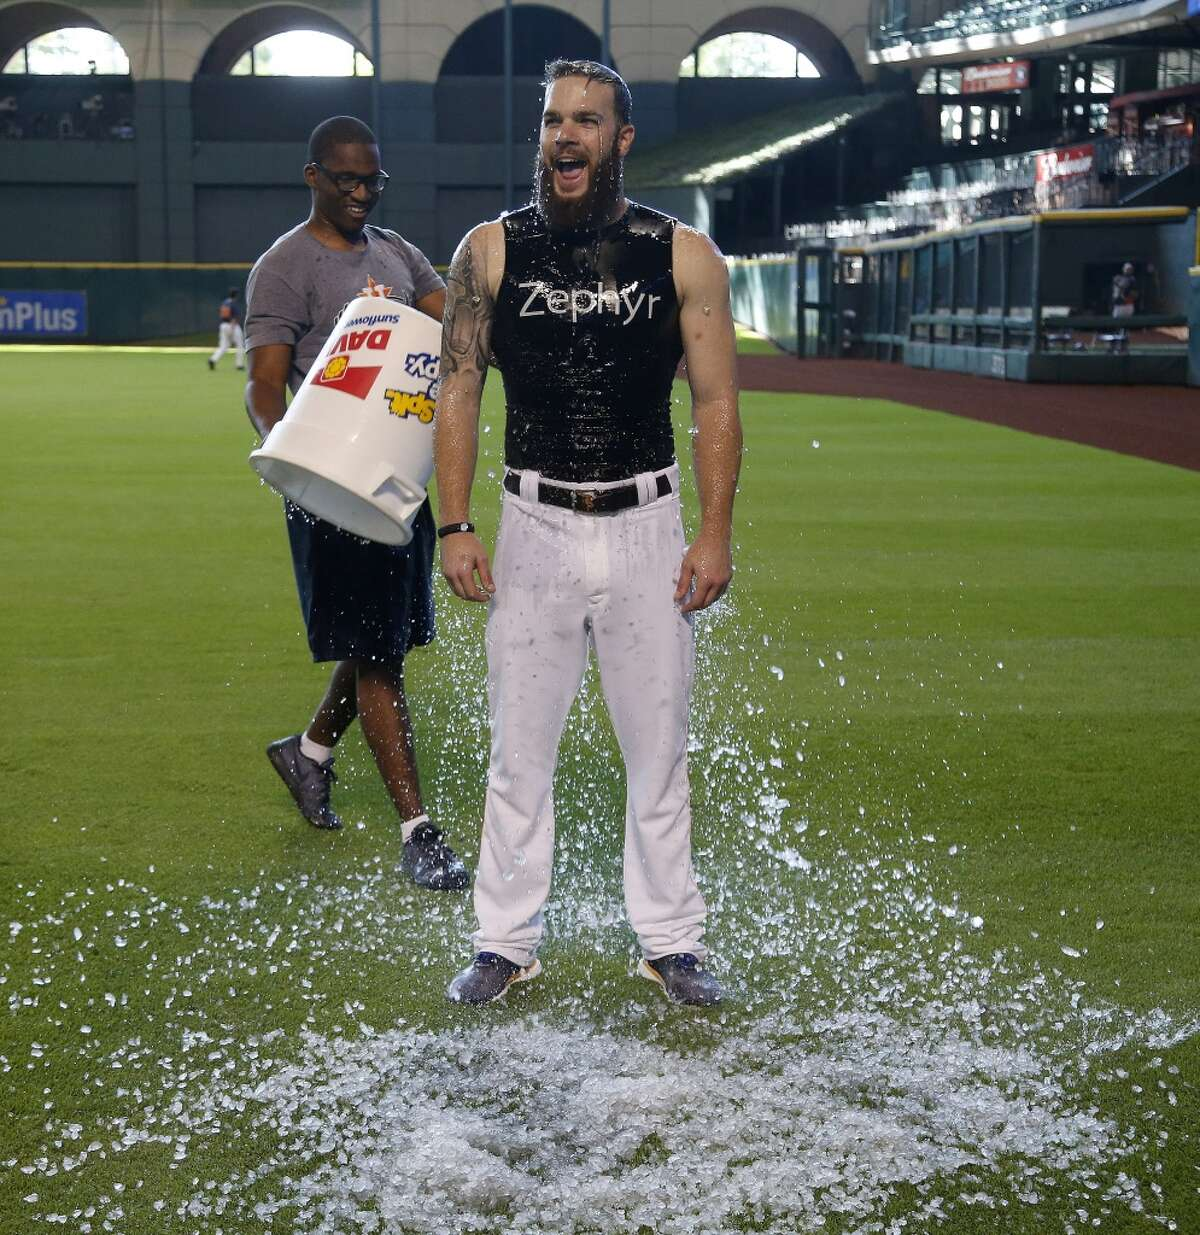 Houston Astros starting pitcher Dallas Keuchel reacts after getting dunked with ice by by strength and conditioning intern Gregory Bourn for the Ice Bucket Challenge to strike out ALS before the start of batting practice at Minute Maid Park, Tuesday, Aug. 12, 2014, in Houston. ( Karen Warren / Houston Chronicle )